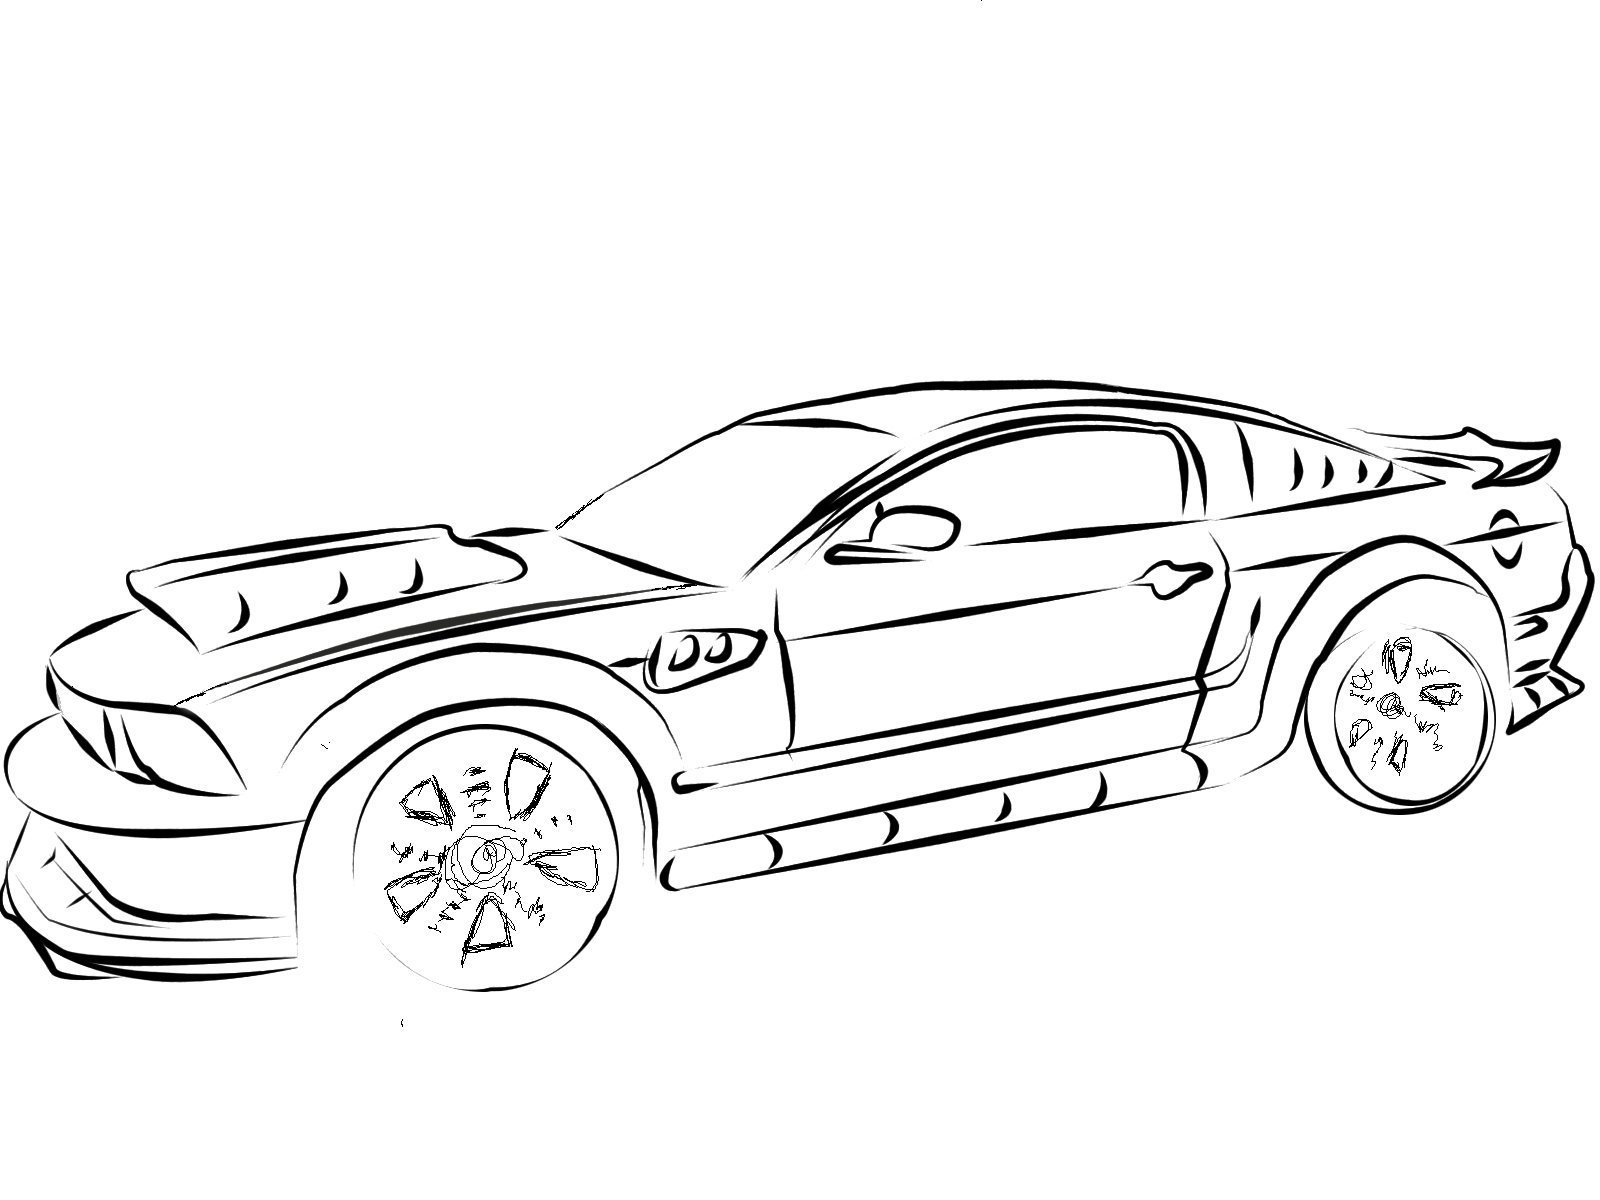 Mustang Outline Drawing At Getdrawings Com Free For